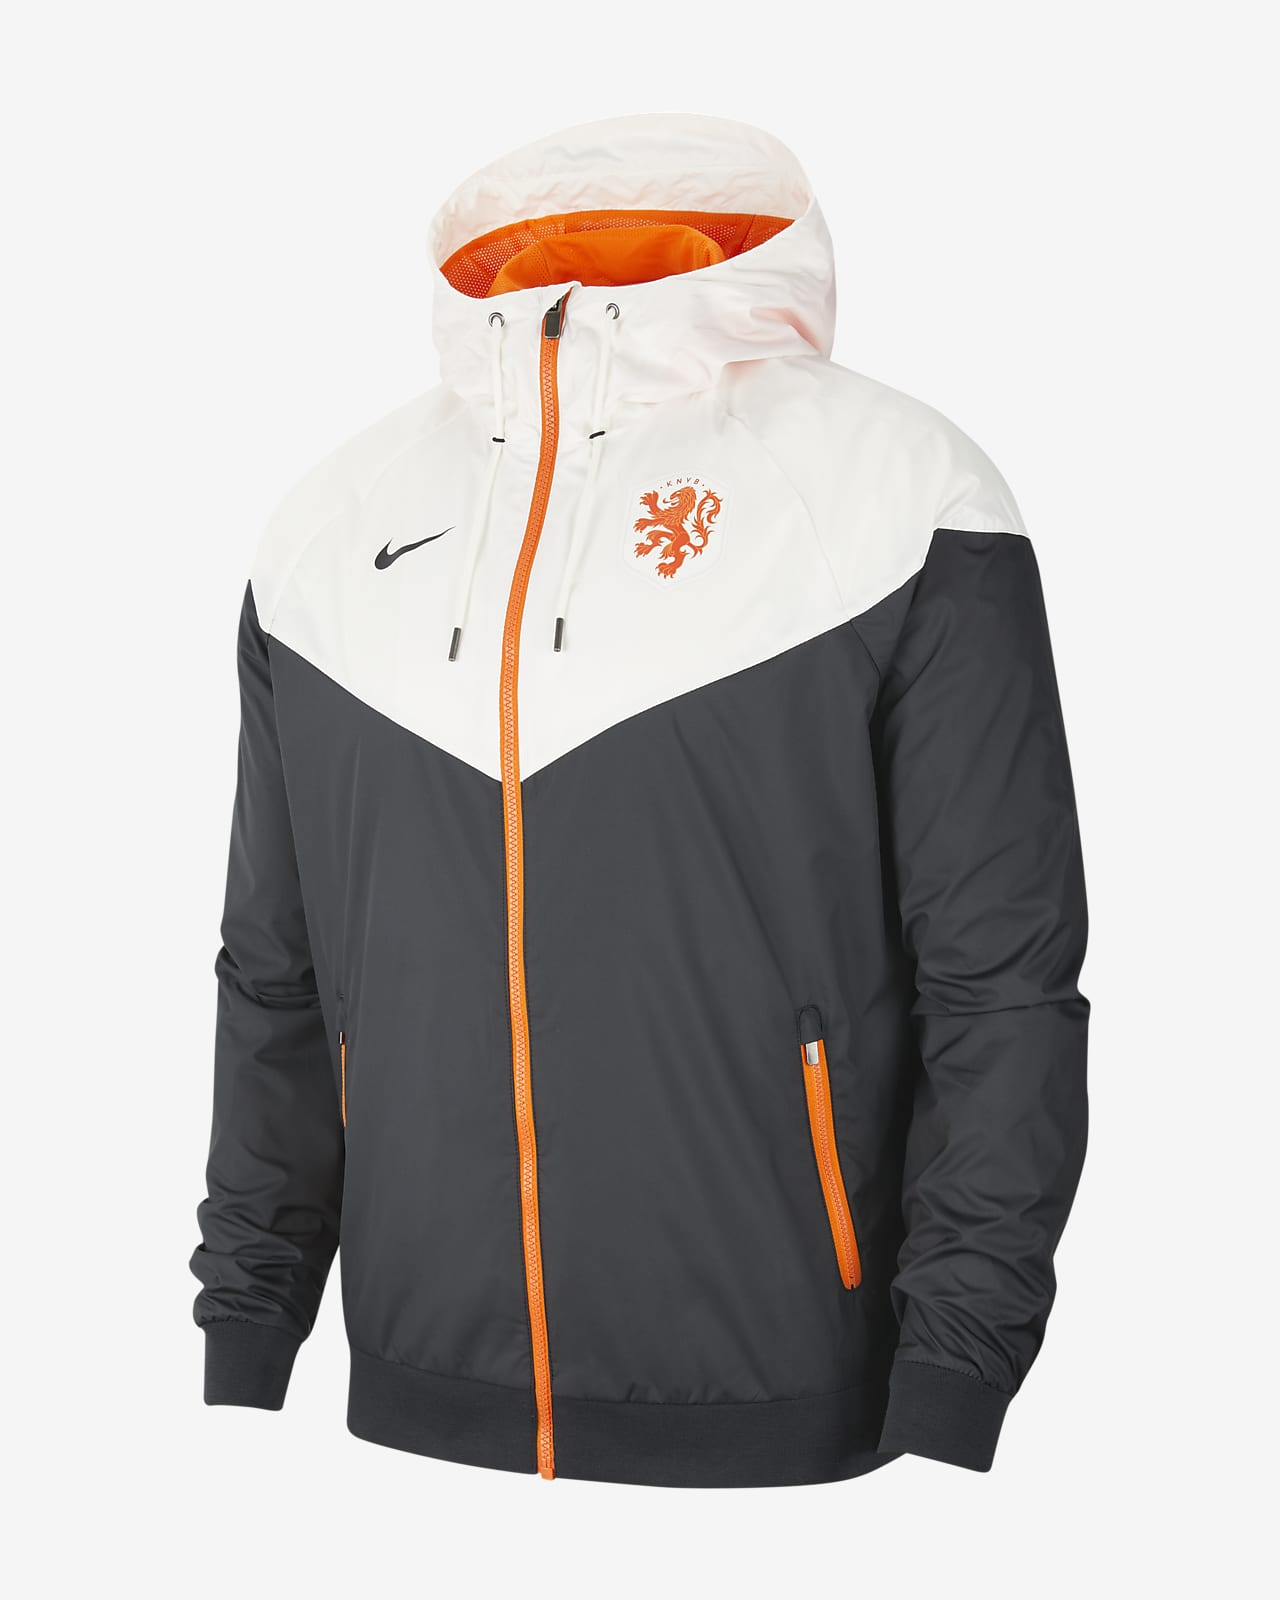 Netherlands Windrunner Men's Jacket